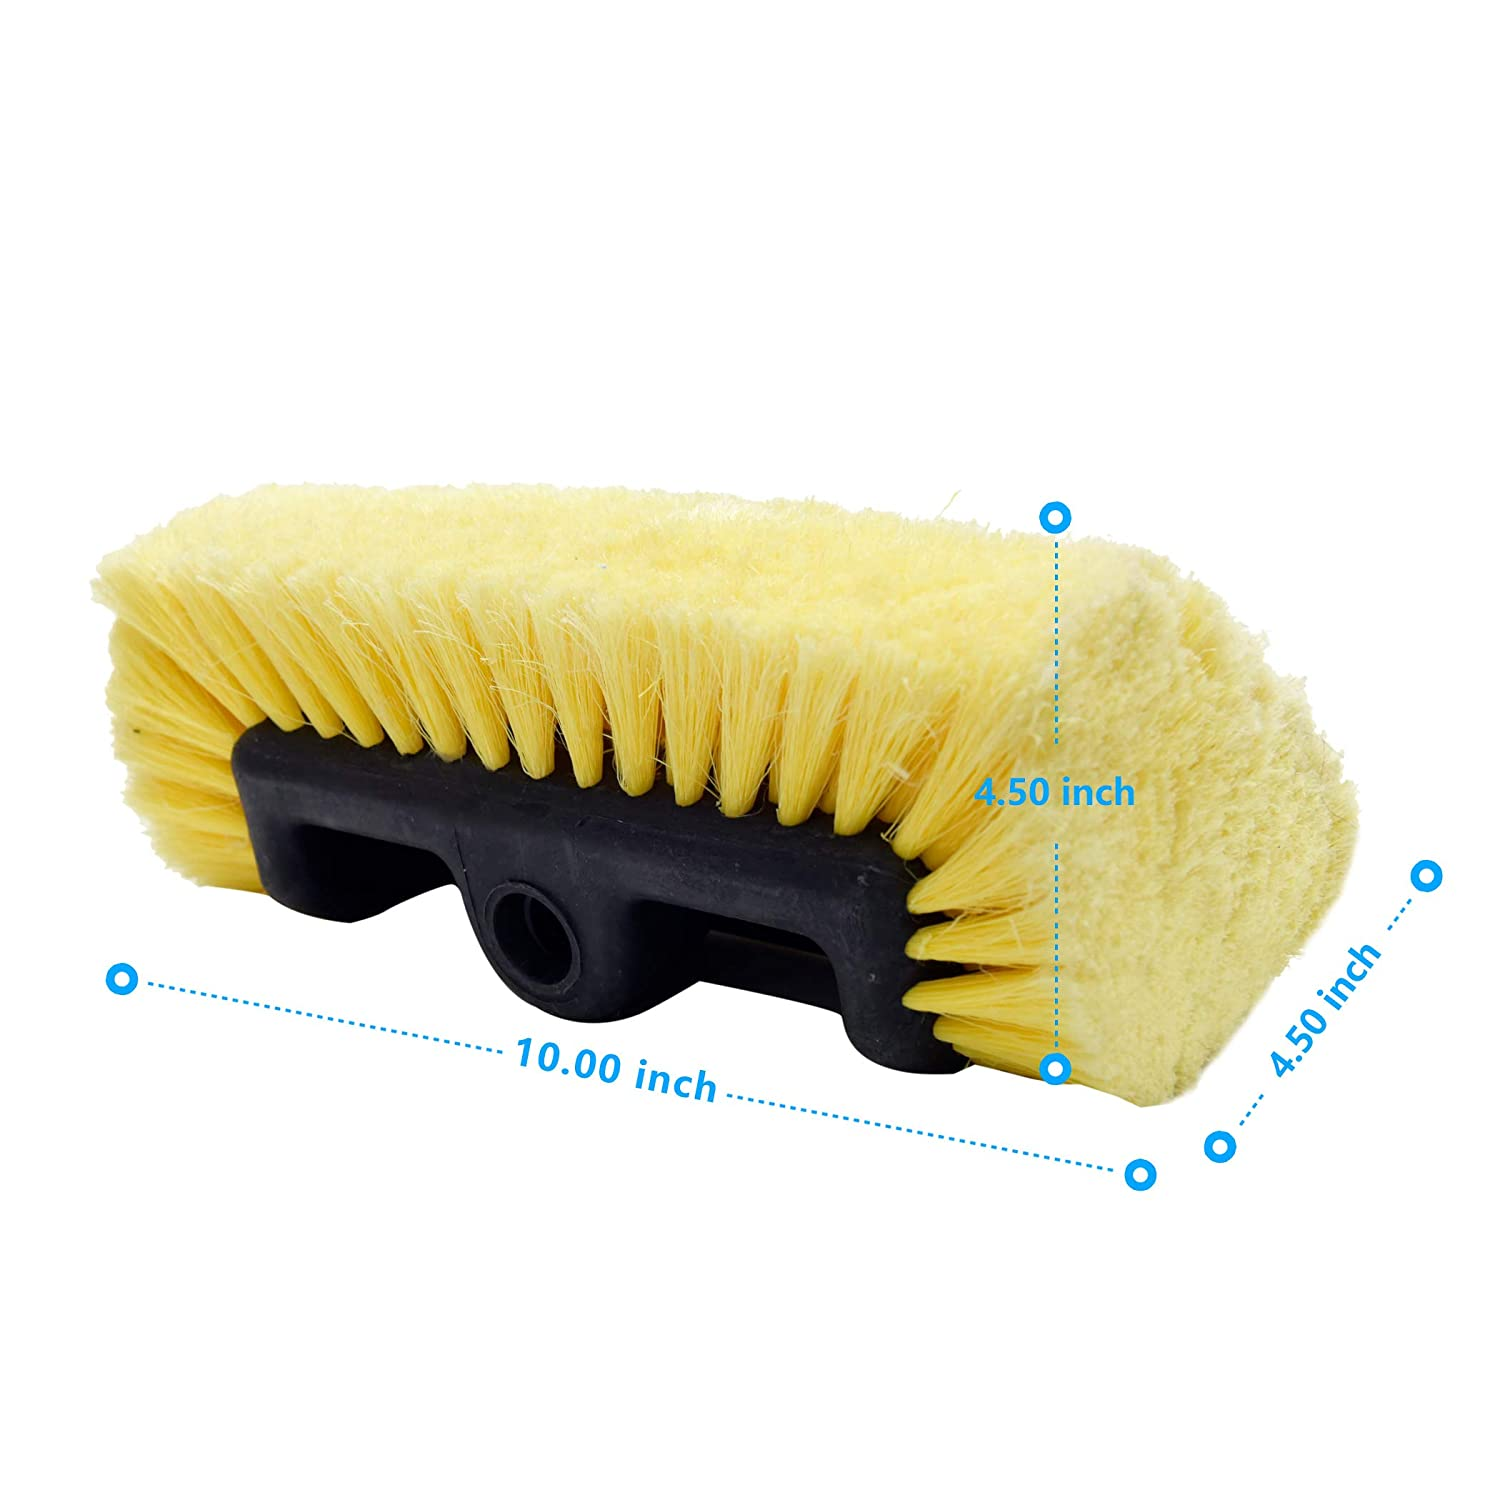 CARCAREZ Flow Thru Dip Car Wash Brush Head with Soft Bristle for Auto RV  Truck Boat Camper Exterior Washing Cleaning, 10 inch